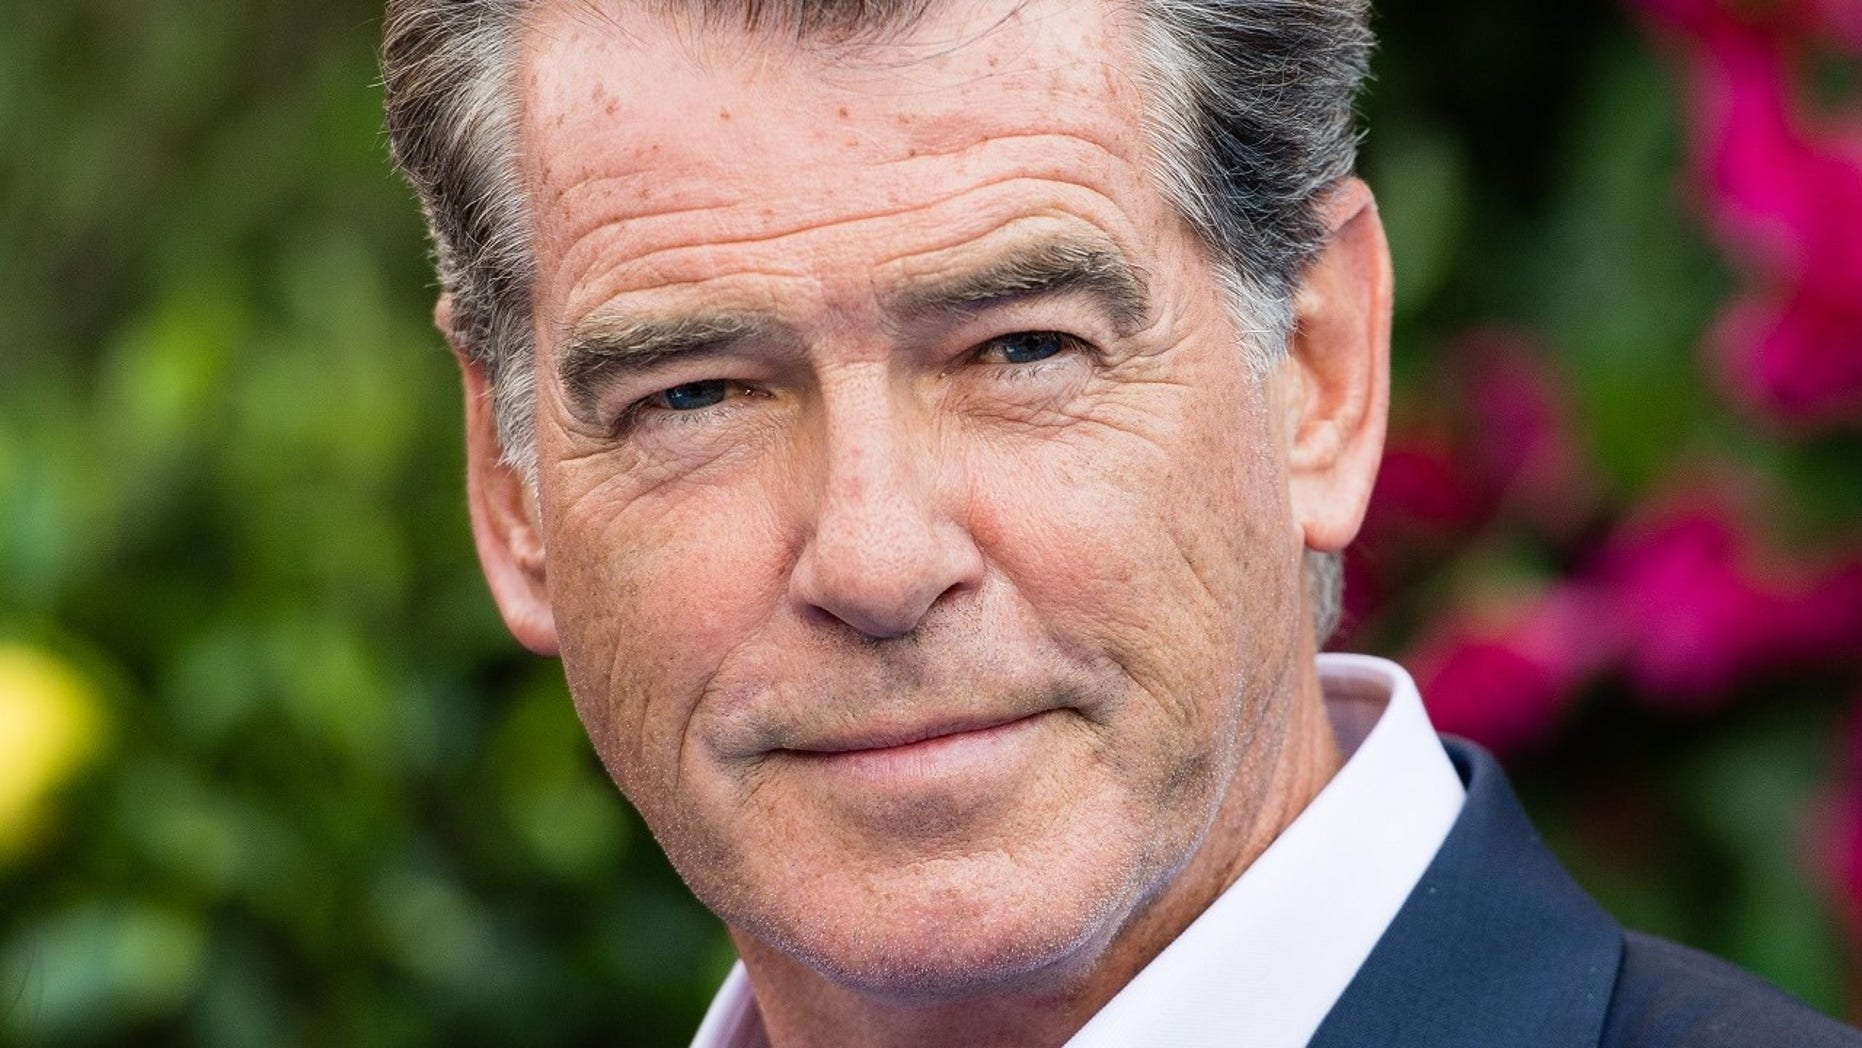 Pierce Brosnan said he had a close encounter with a shark during his vacation in French Polynesia.